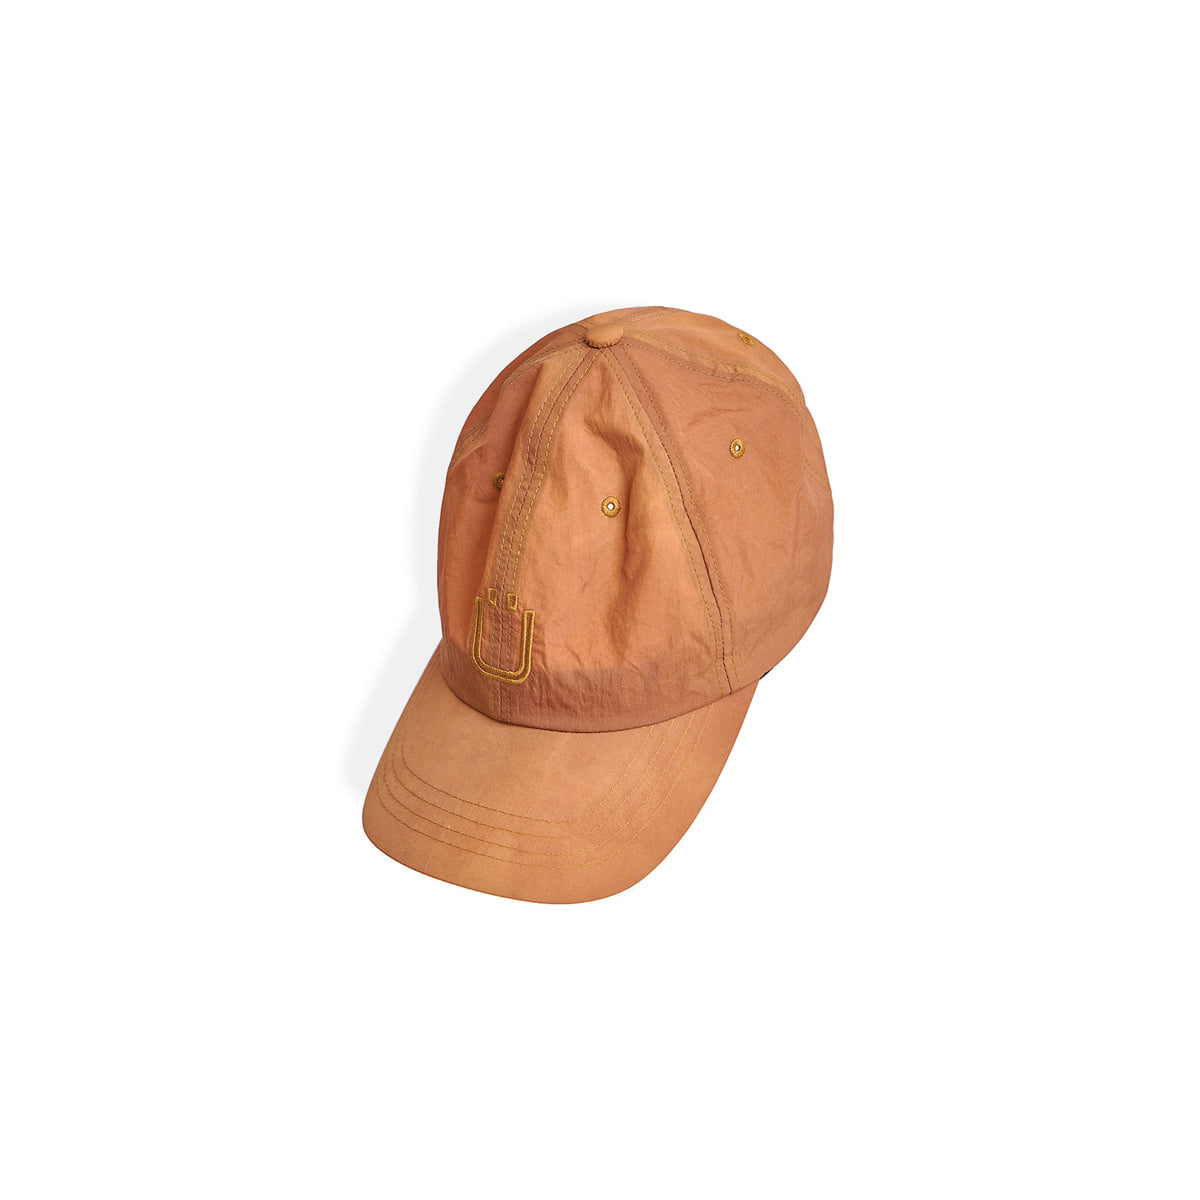 [UNAFFECTED] DRAWSTRING BALL CAP 'SUNSET ORANGE'